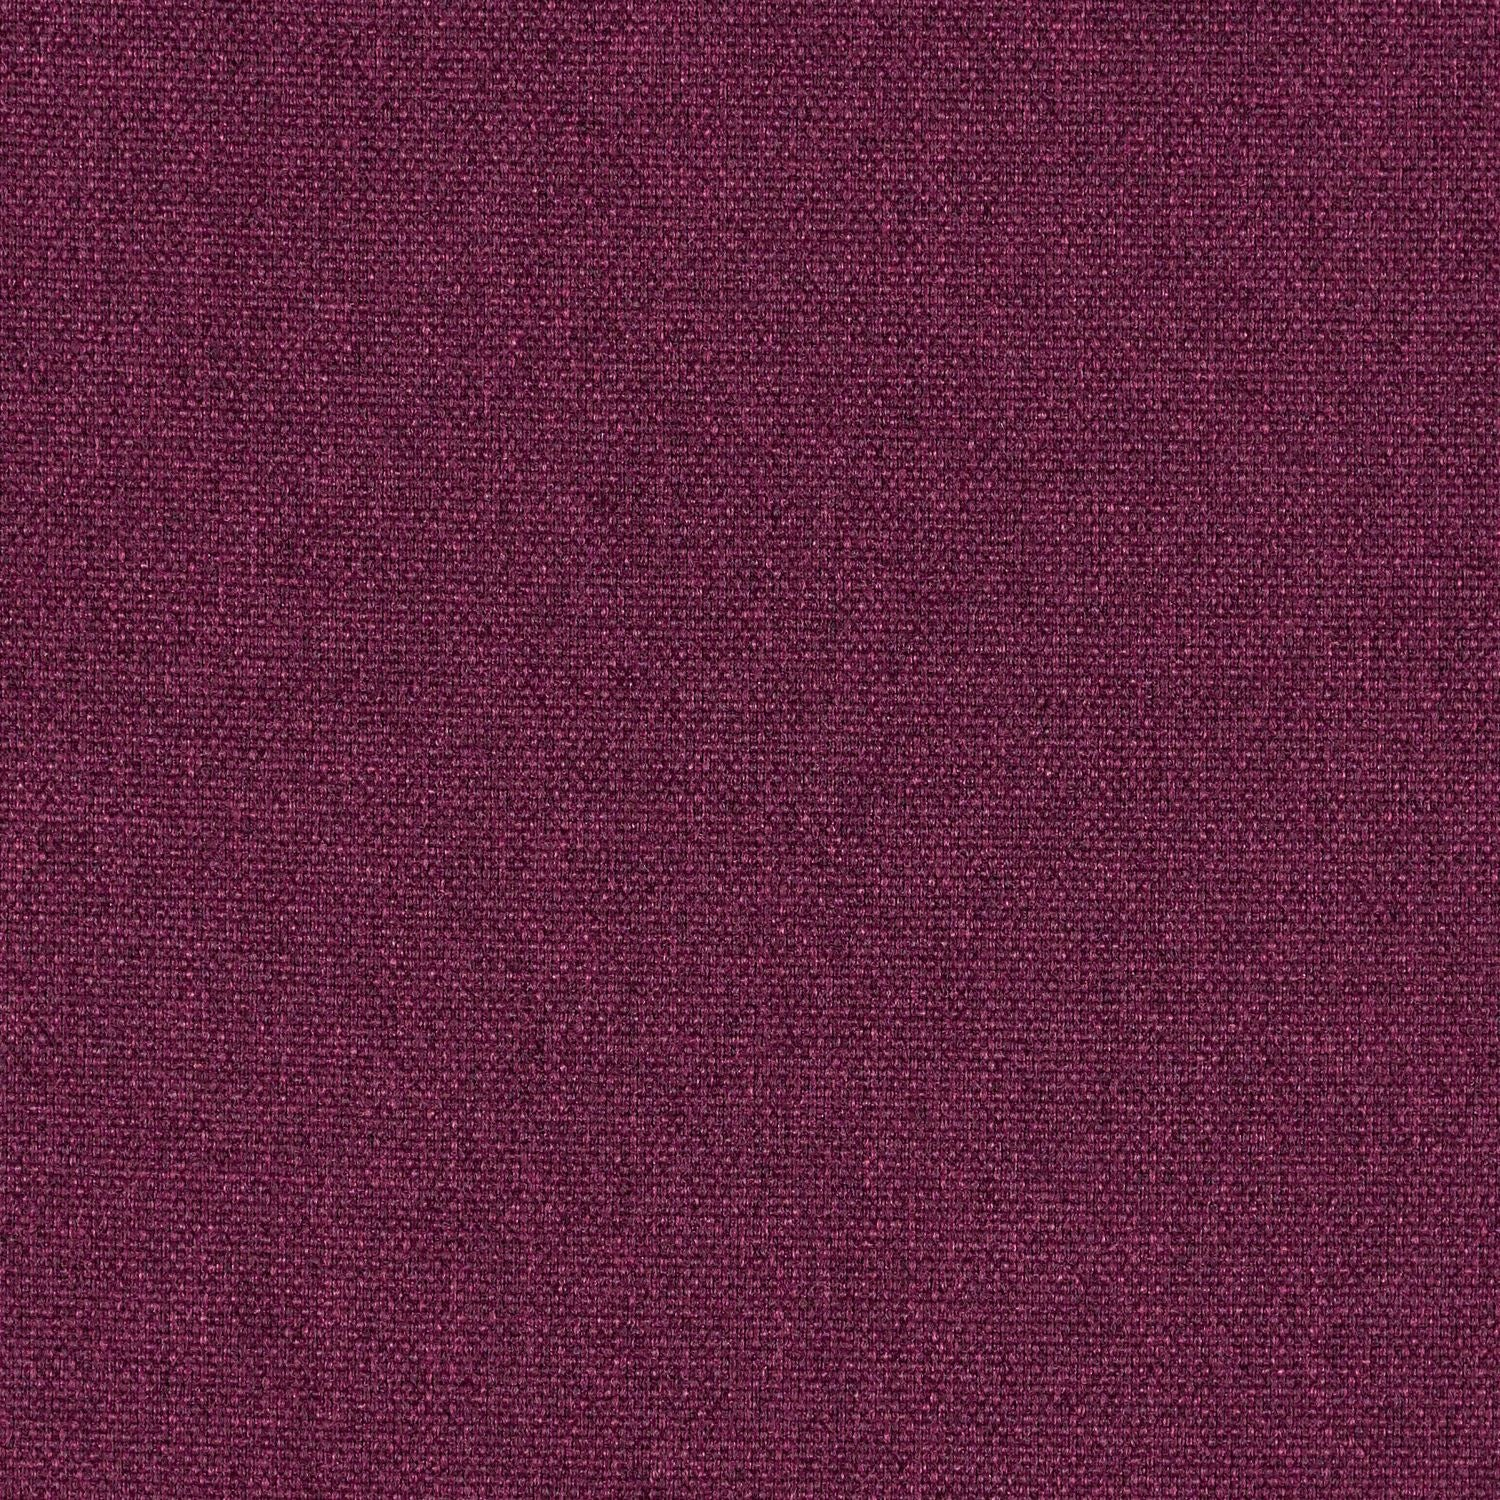 Beetroot Tech|4059-16-T177|Beetroot Tech 4059-16-T177